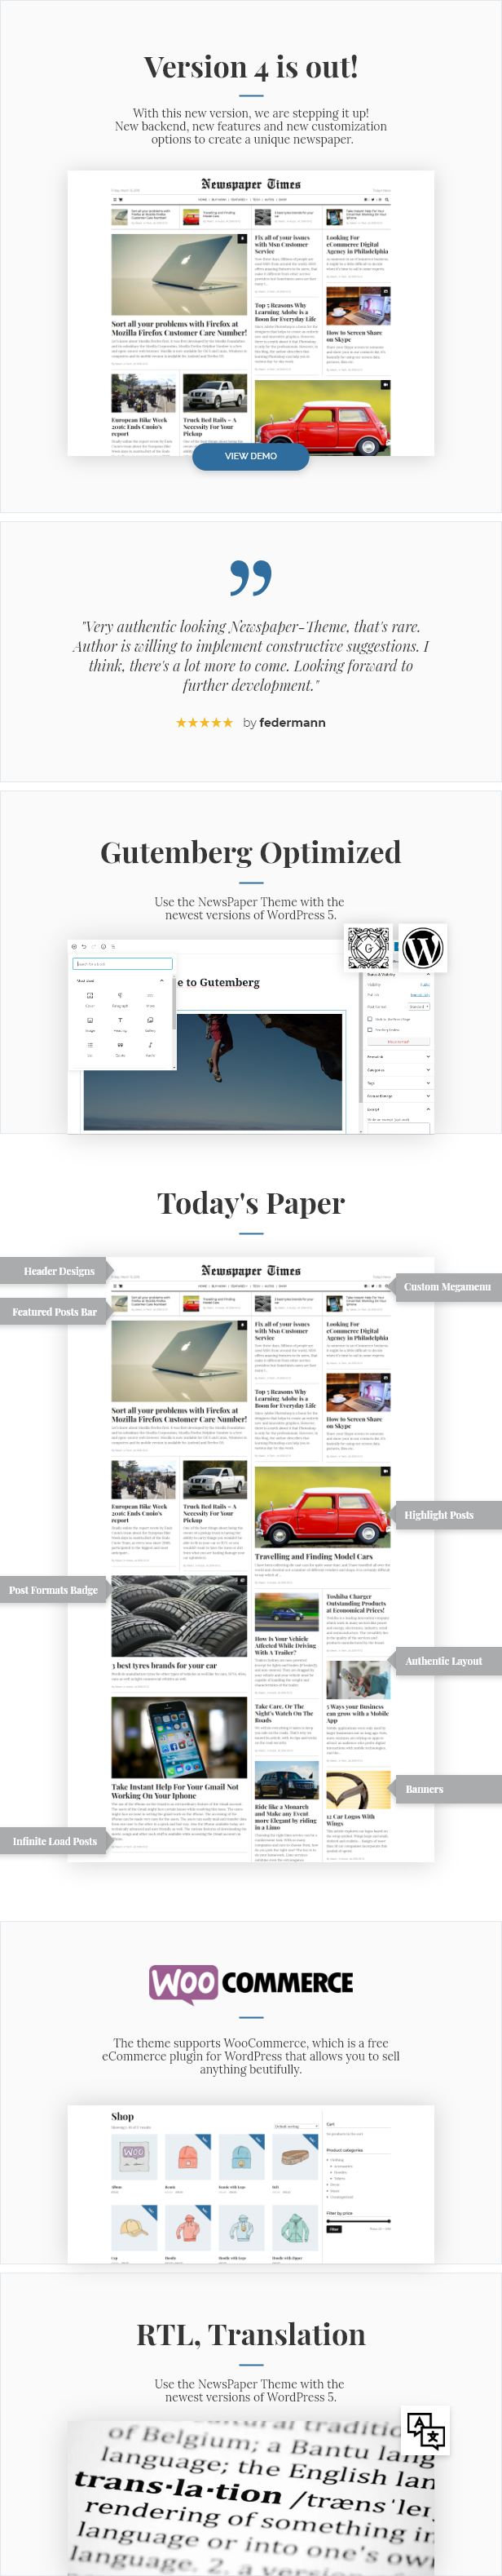 NewsPaper - News & Magazine WordPress Theme - 1